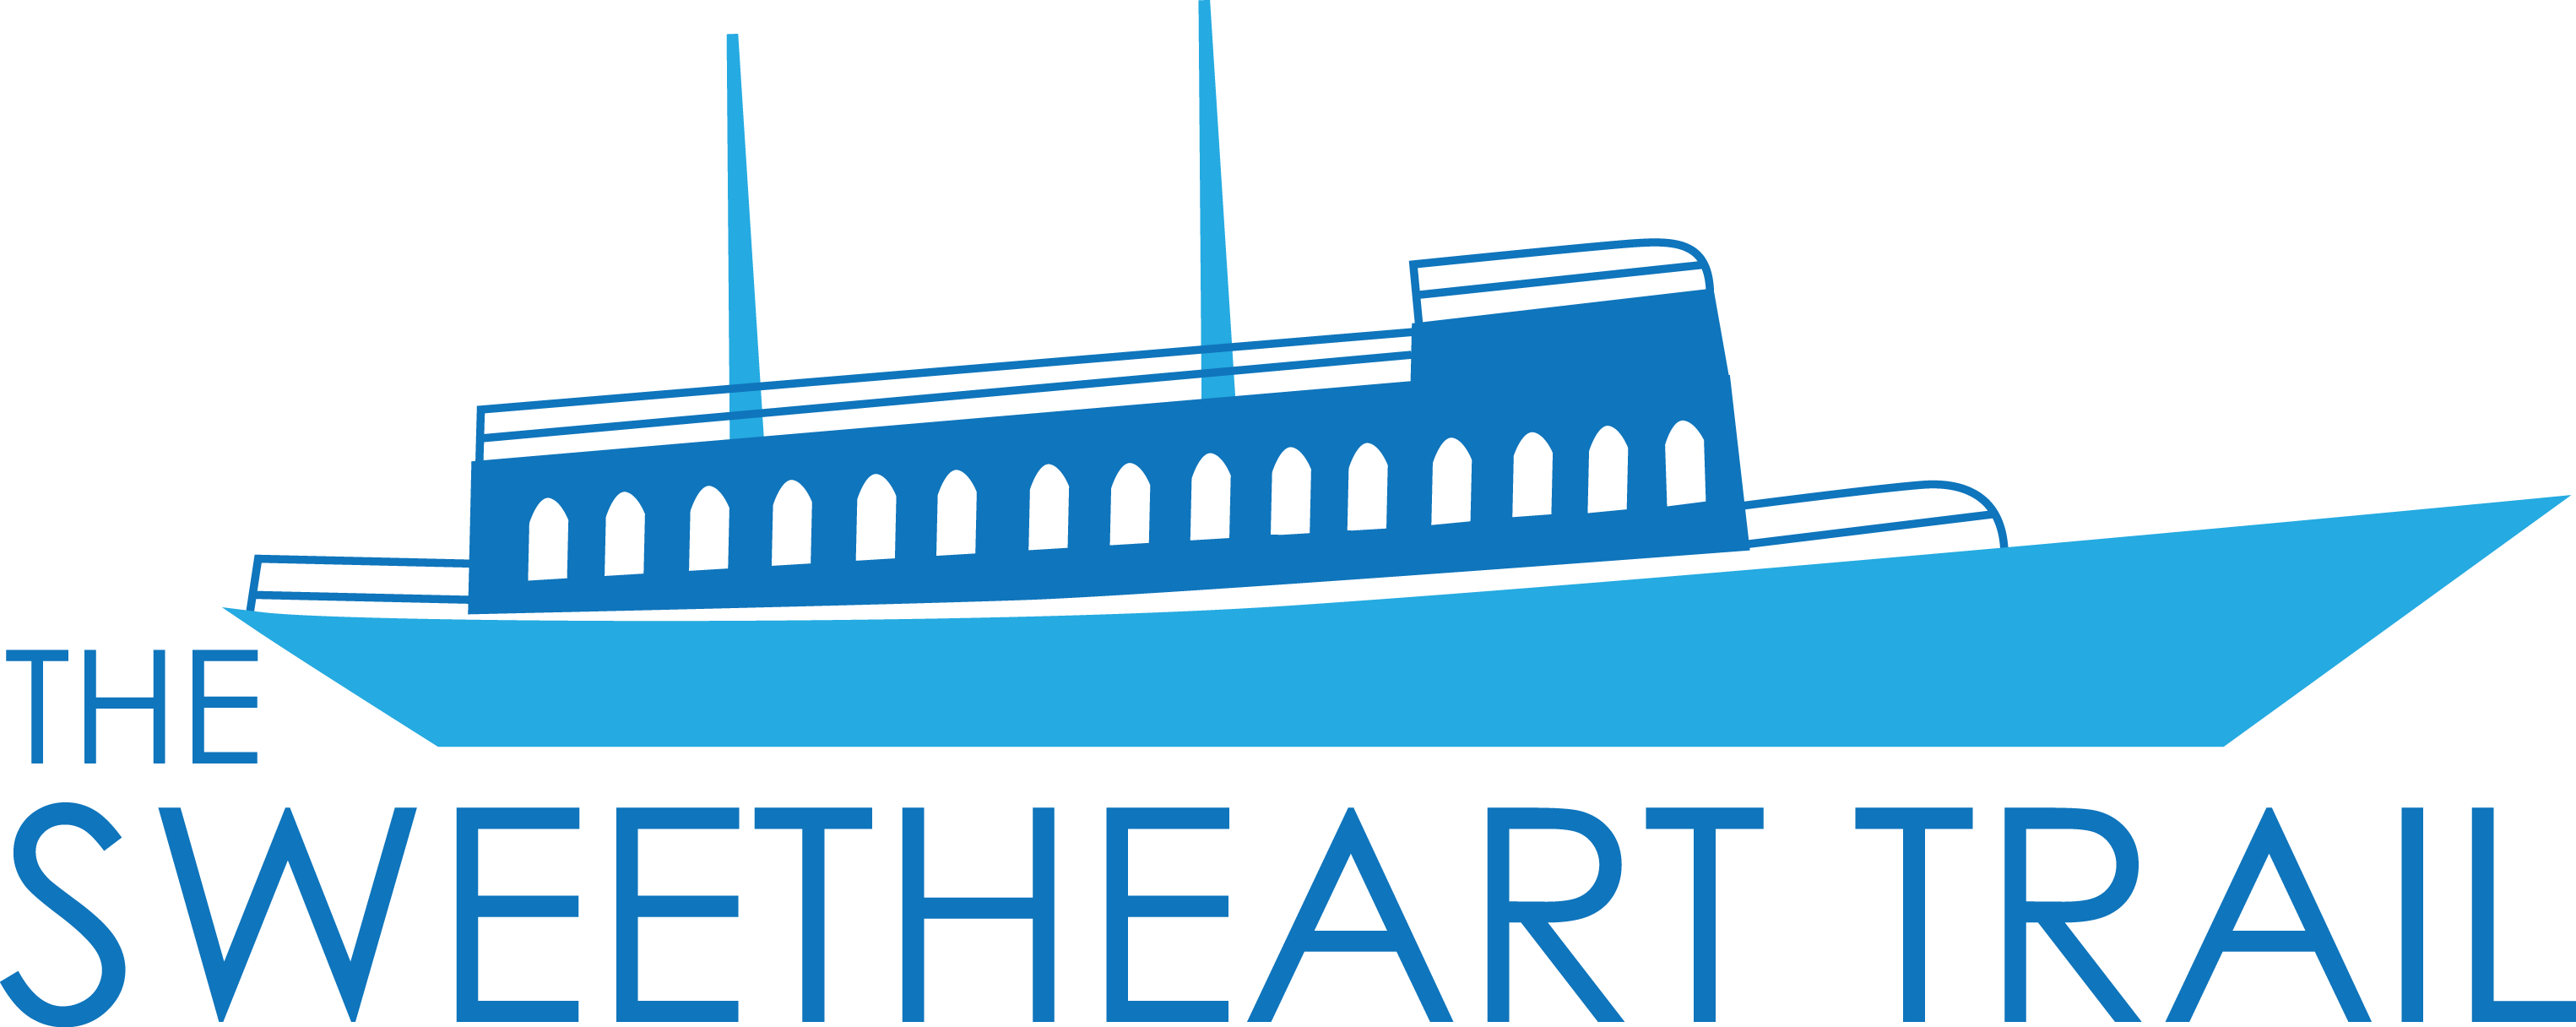 sweetheart logo